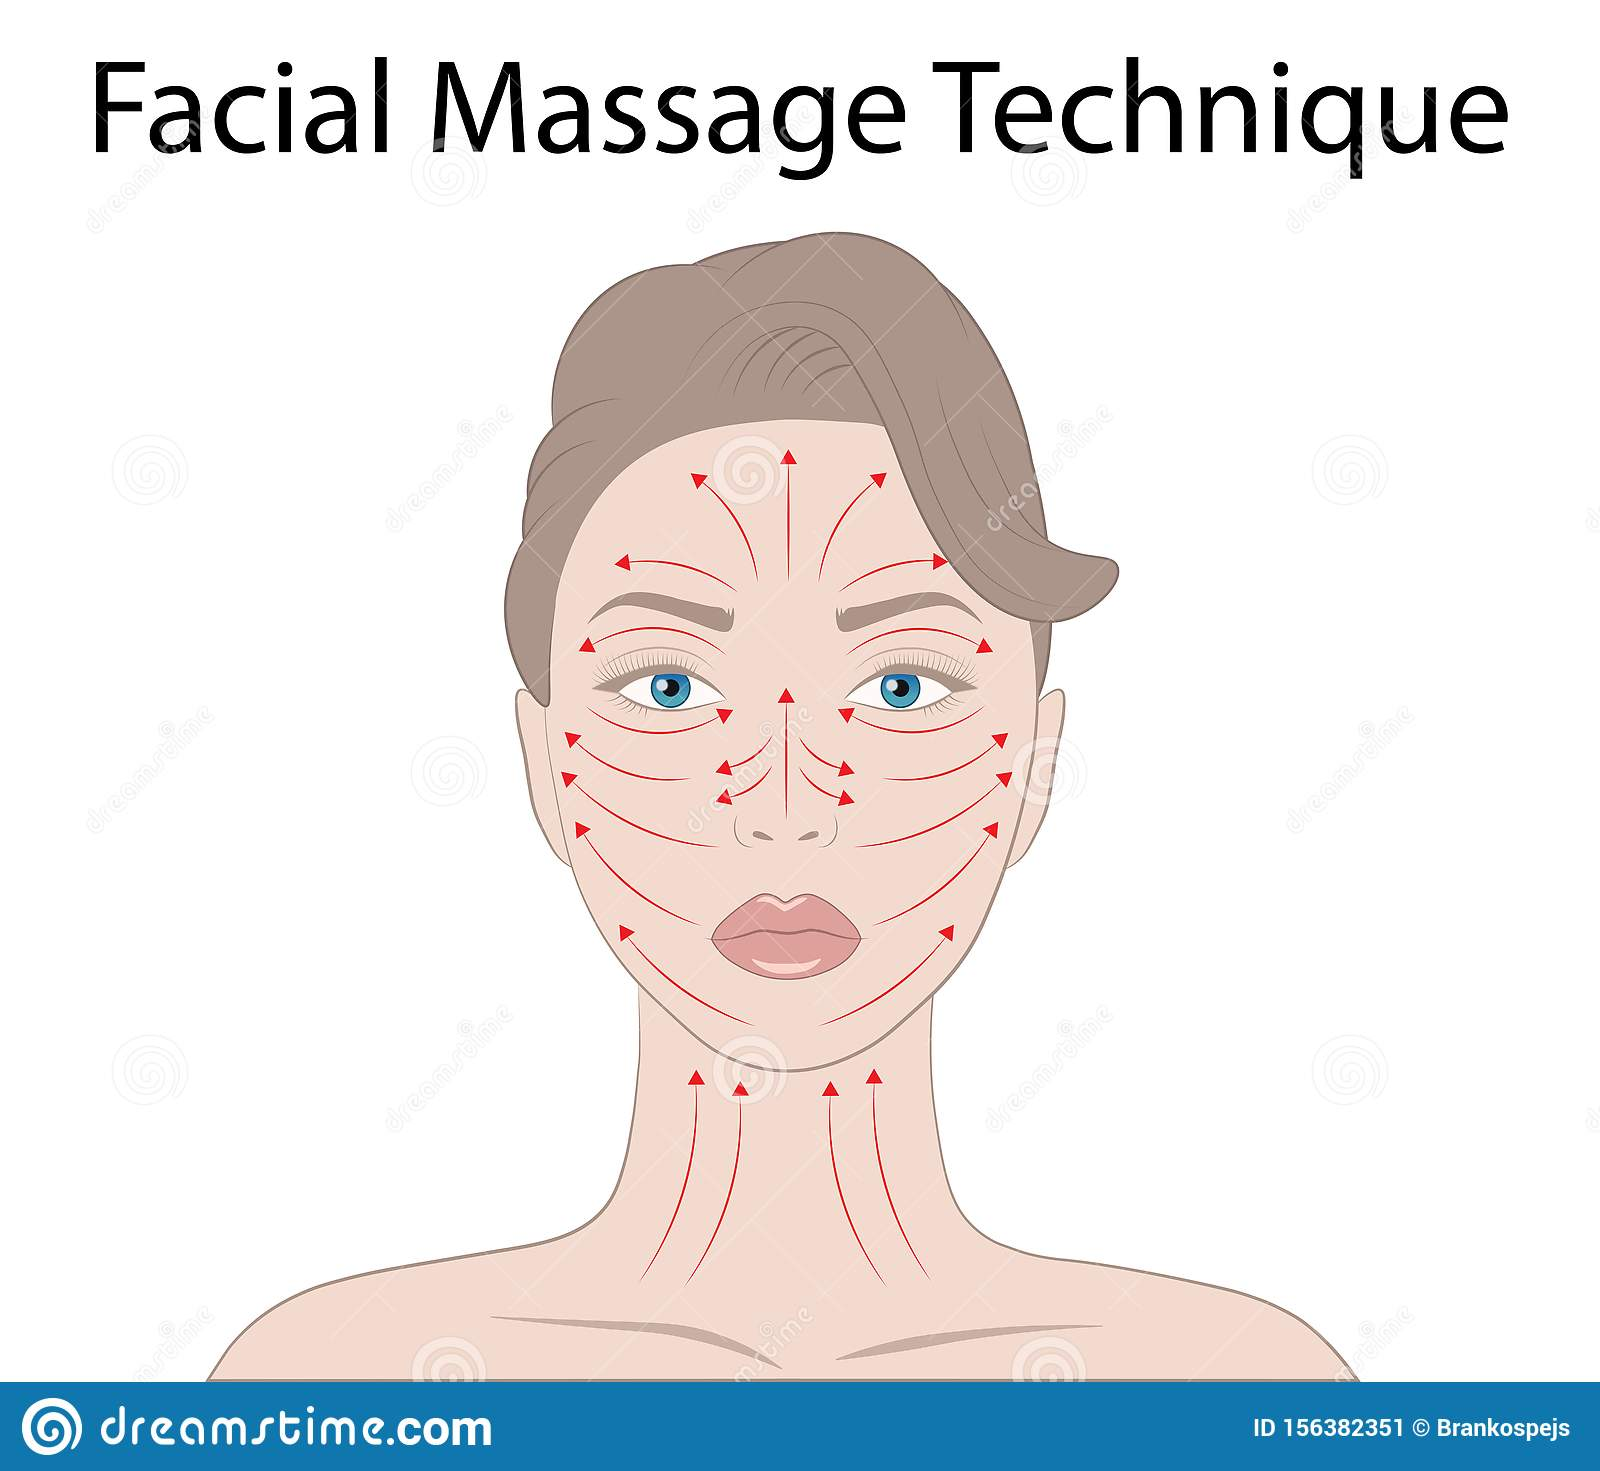 Facial Massage Technique And Shiatsu Points Acupuncture Vector Illustration Stock Vector Illustration Of Face Isolated 156382351